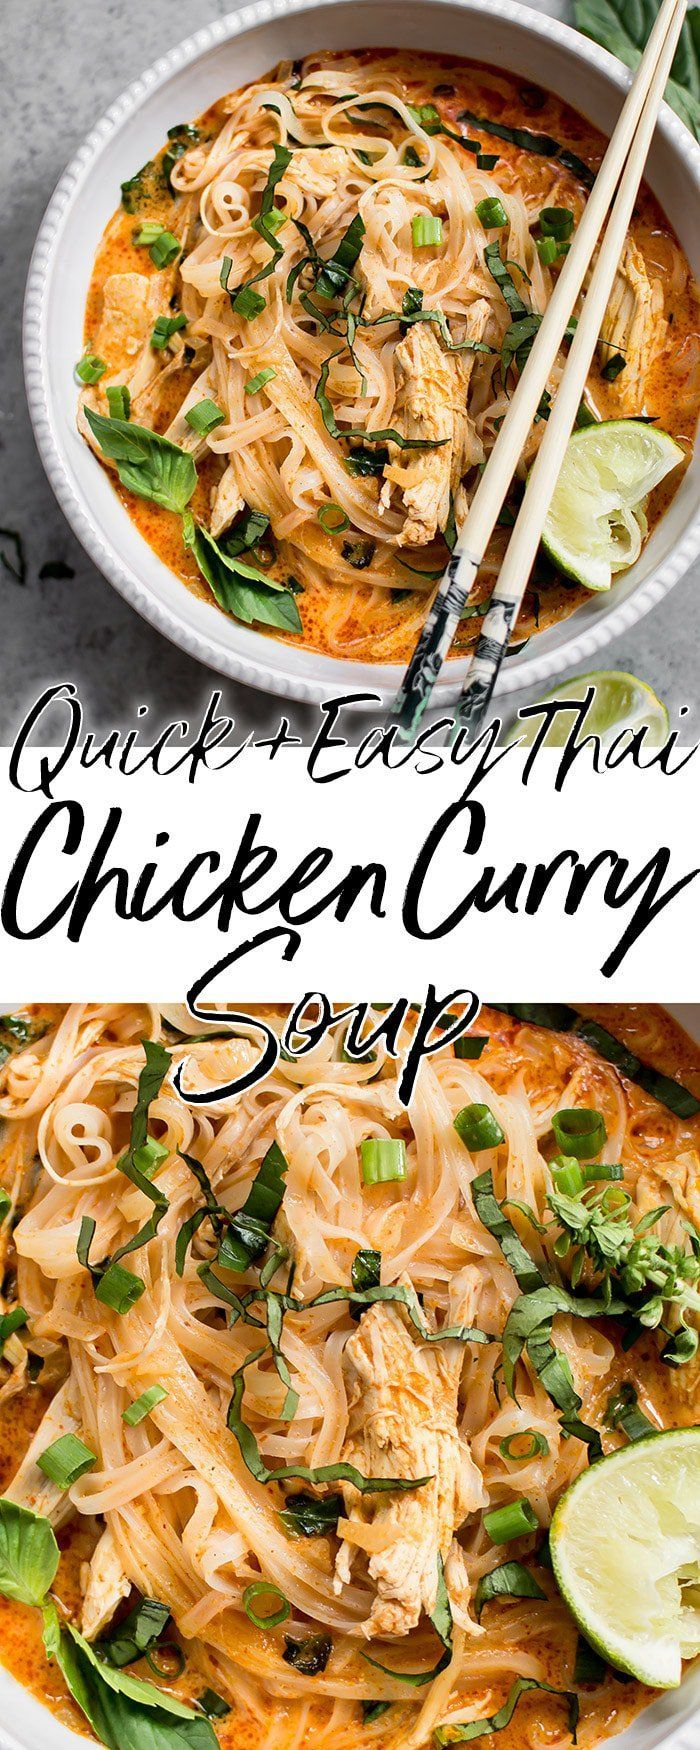 This Thai chicken curry soup is quick, easy, comforting, and full of fabulous flavor. A great way to use up leftover or rotisserie chicken! #Thaisoup #curry #coconutcurry #chickensoup